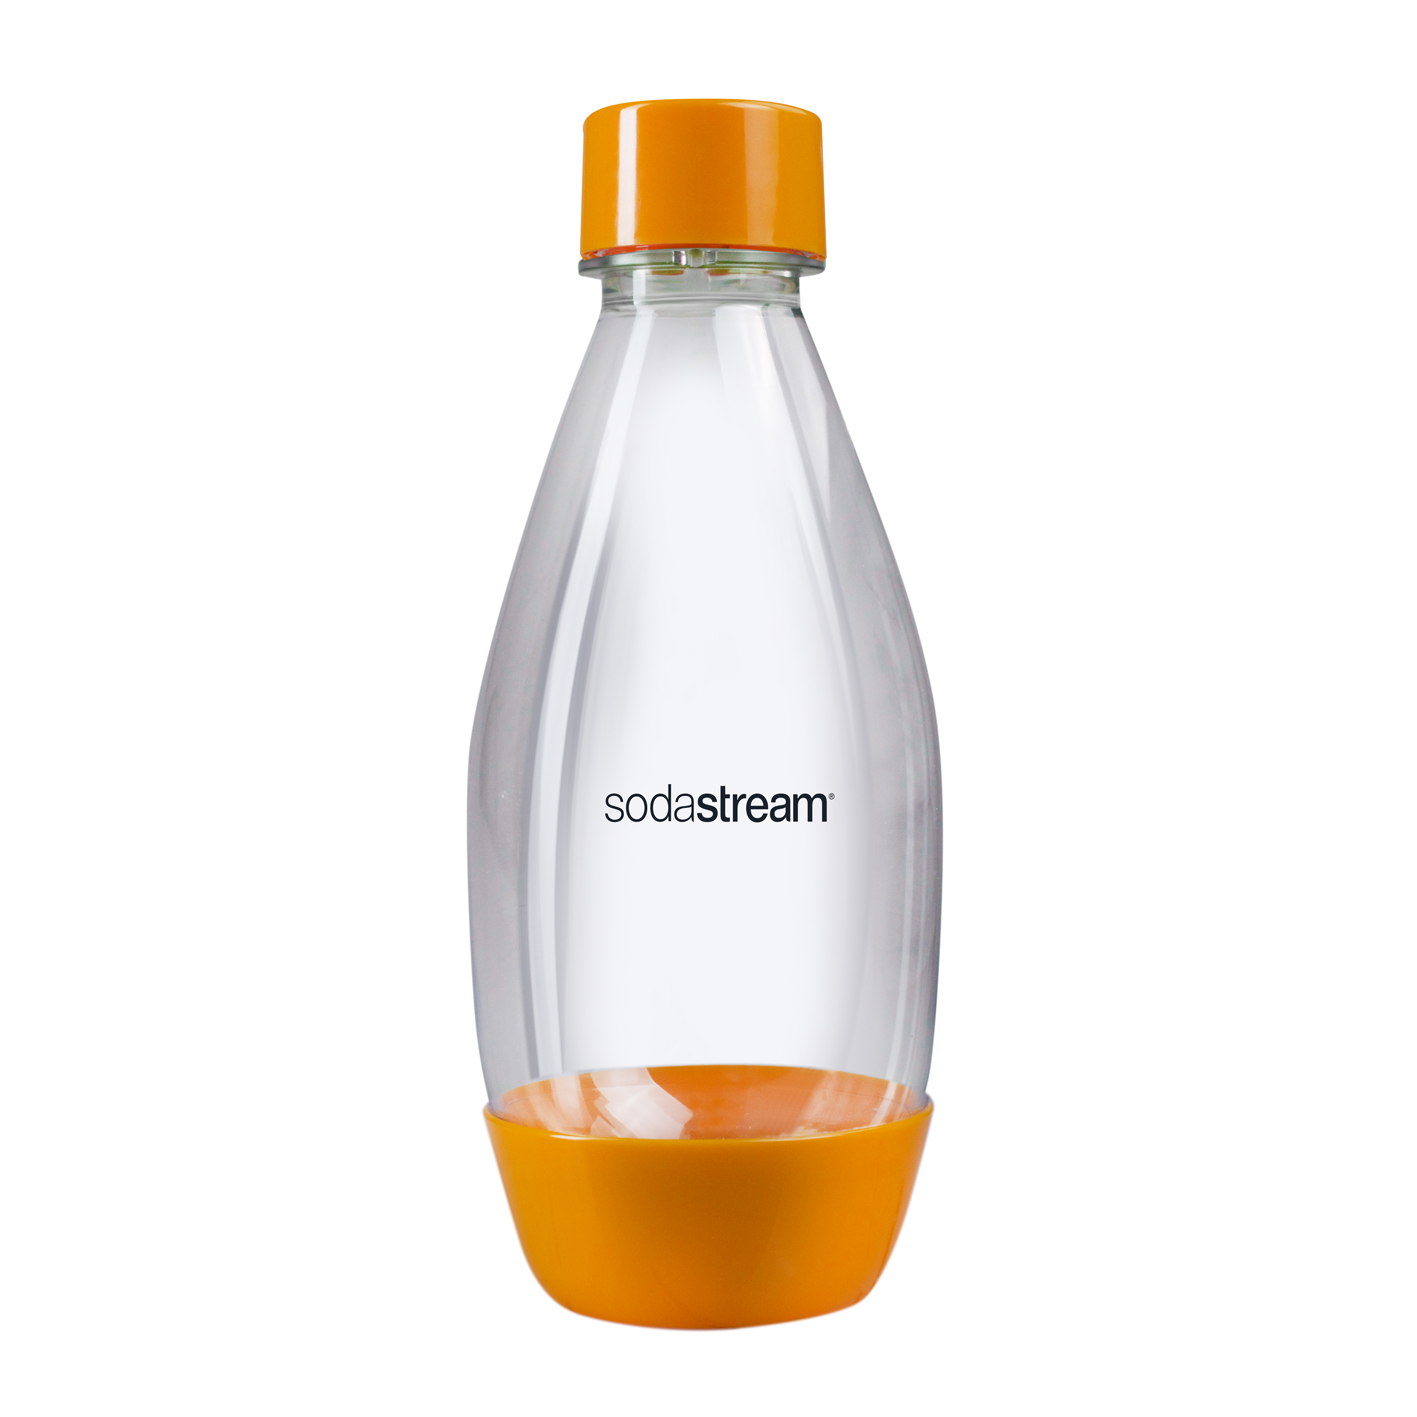 sodastream duopack 0 5 l pet gr n orange wassersprudler. Black Bedroom Furniture Sets. Home Design Ideas